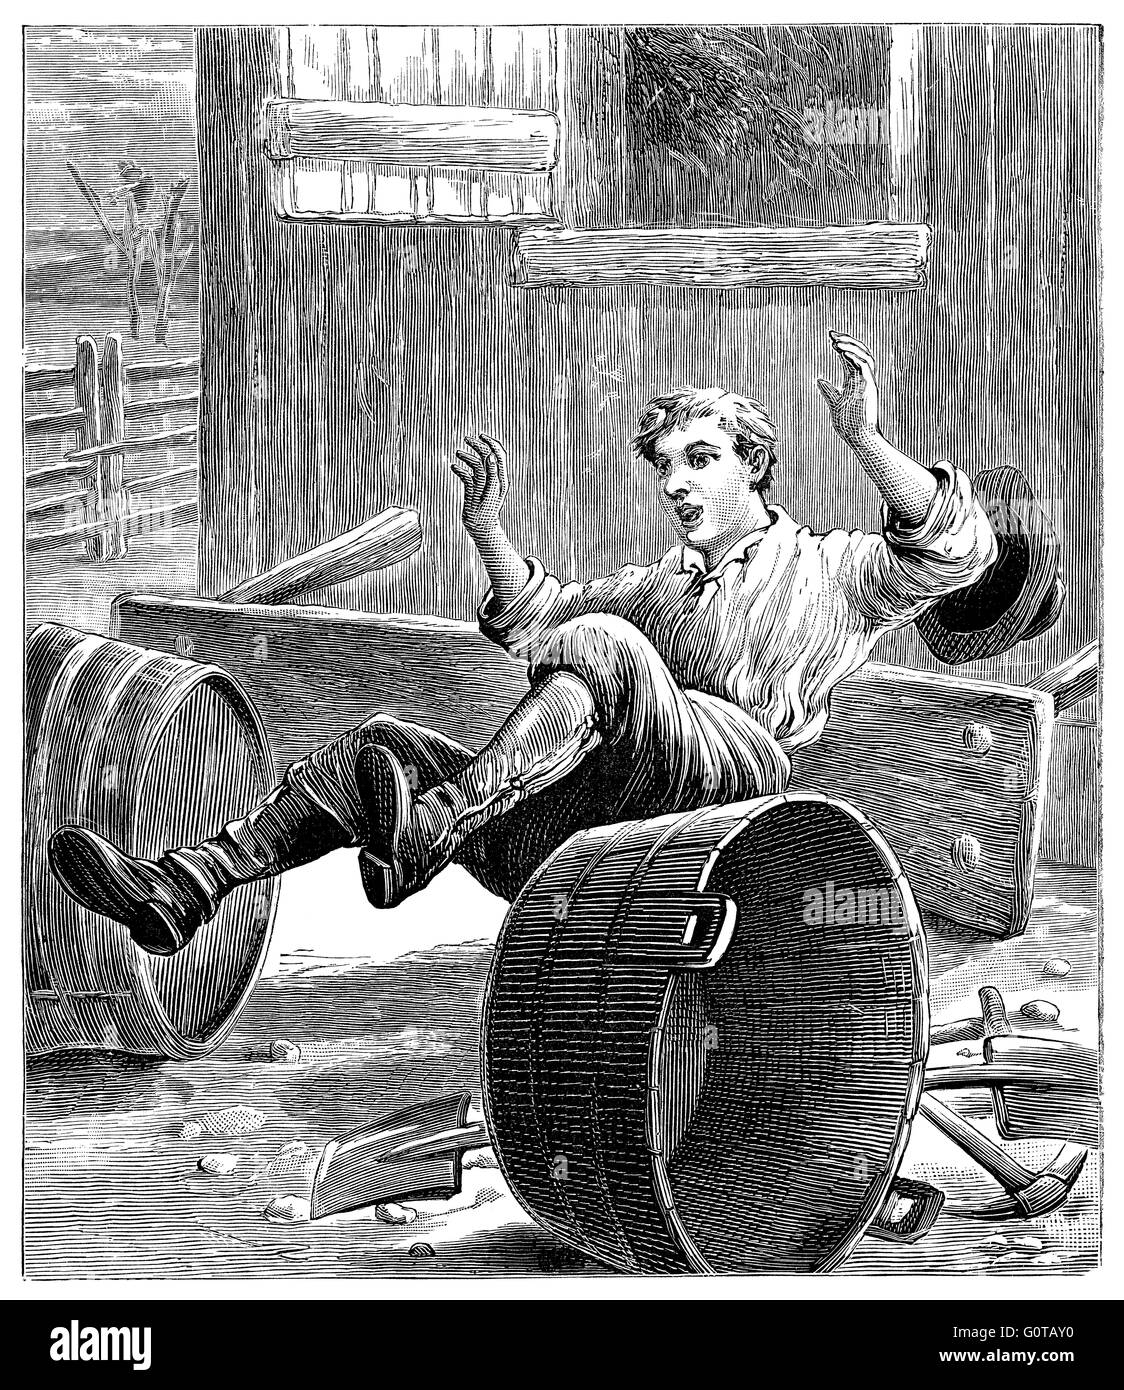 Black and white engraving of a a Victorian or Edwardian man falling over. - Stock Image